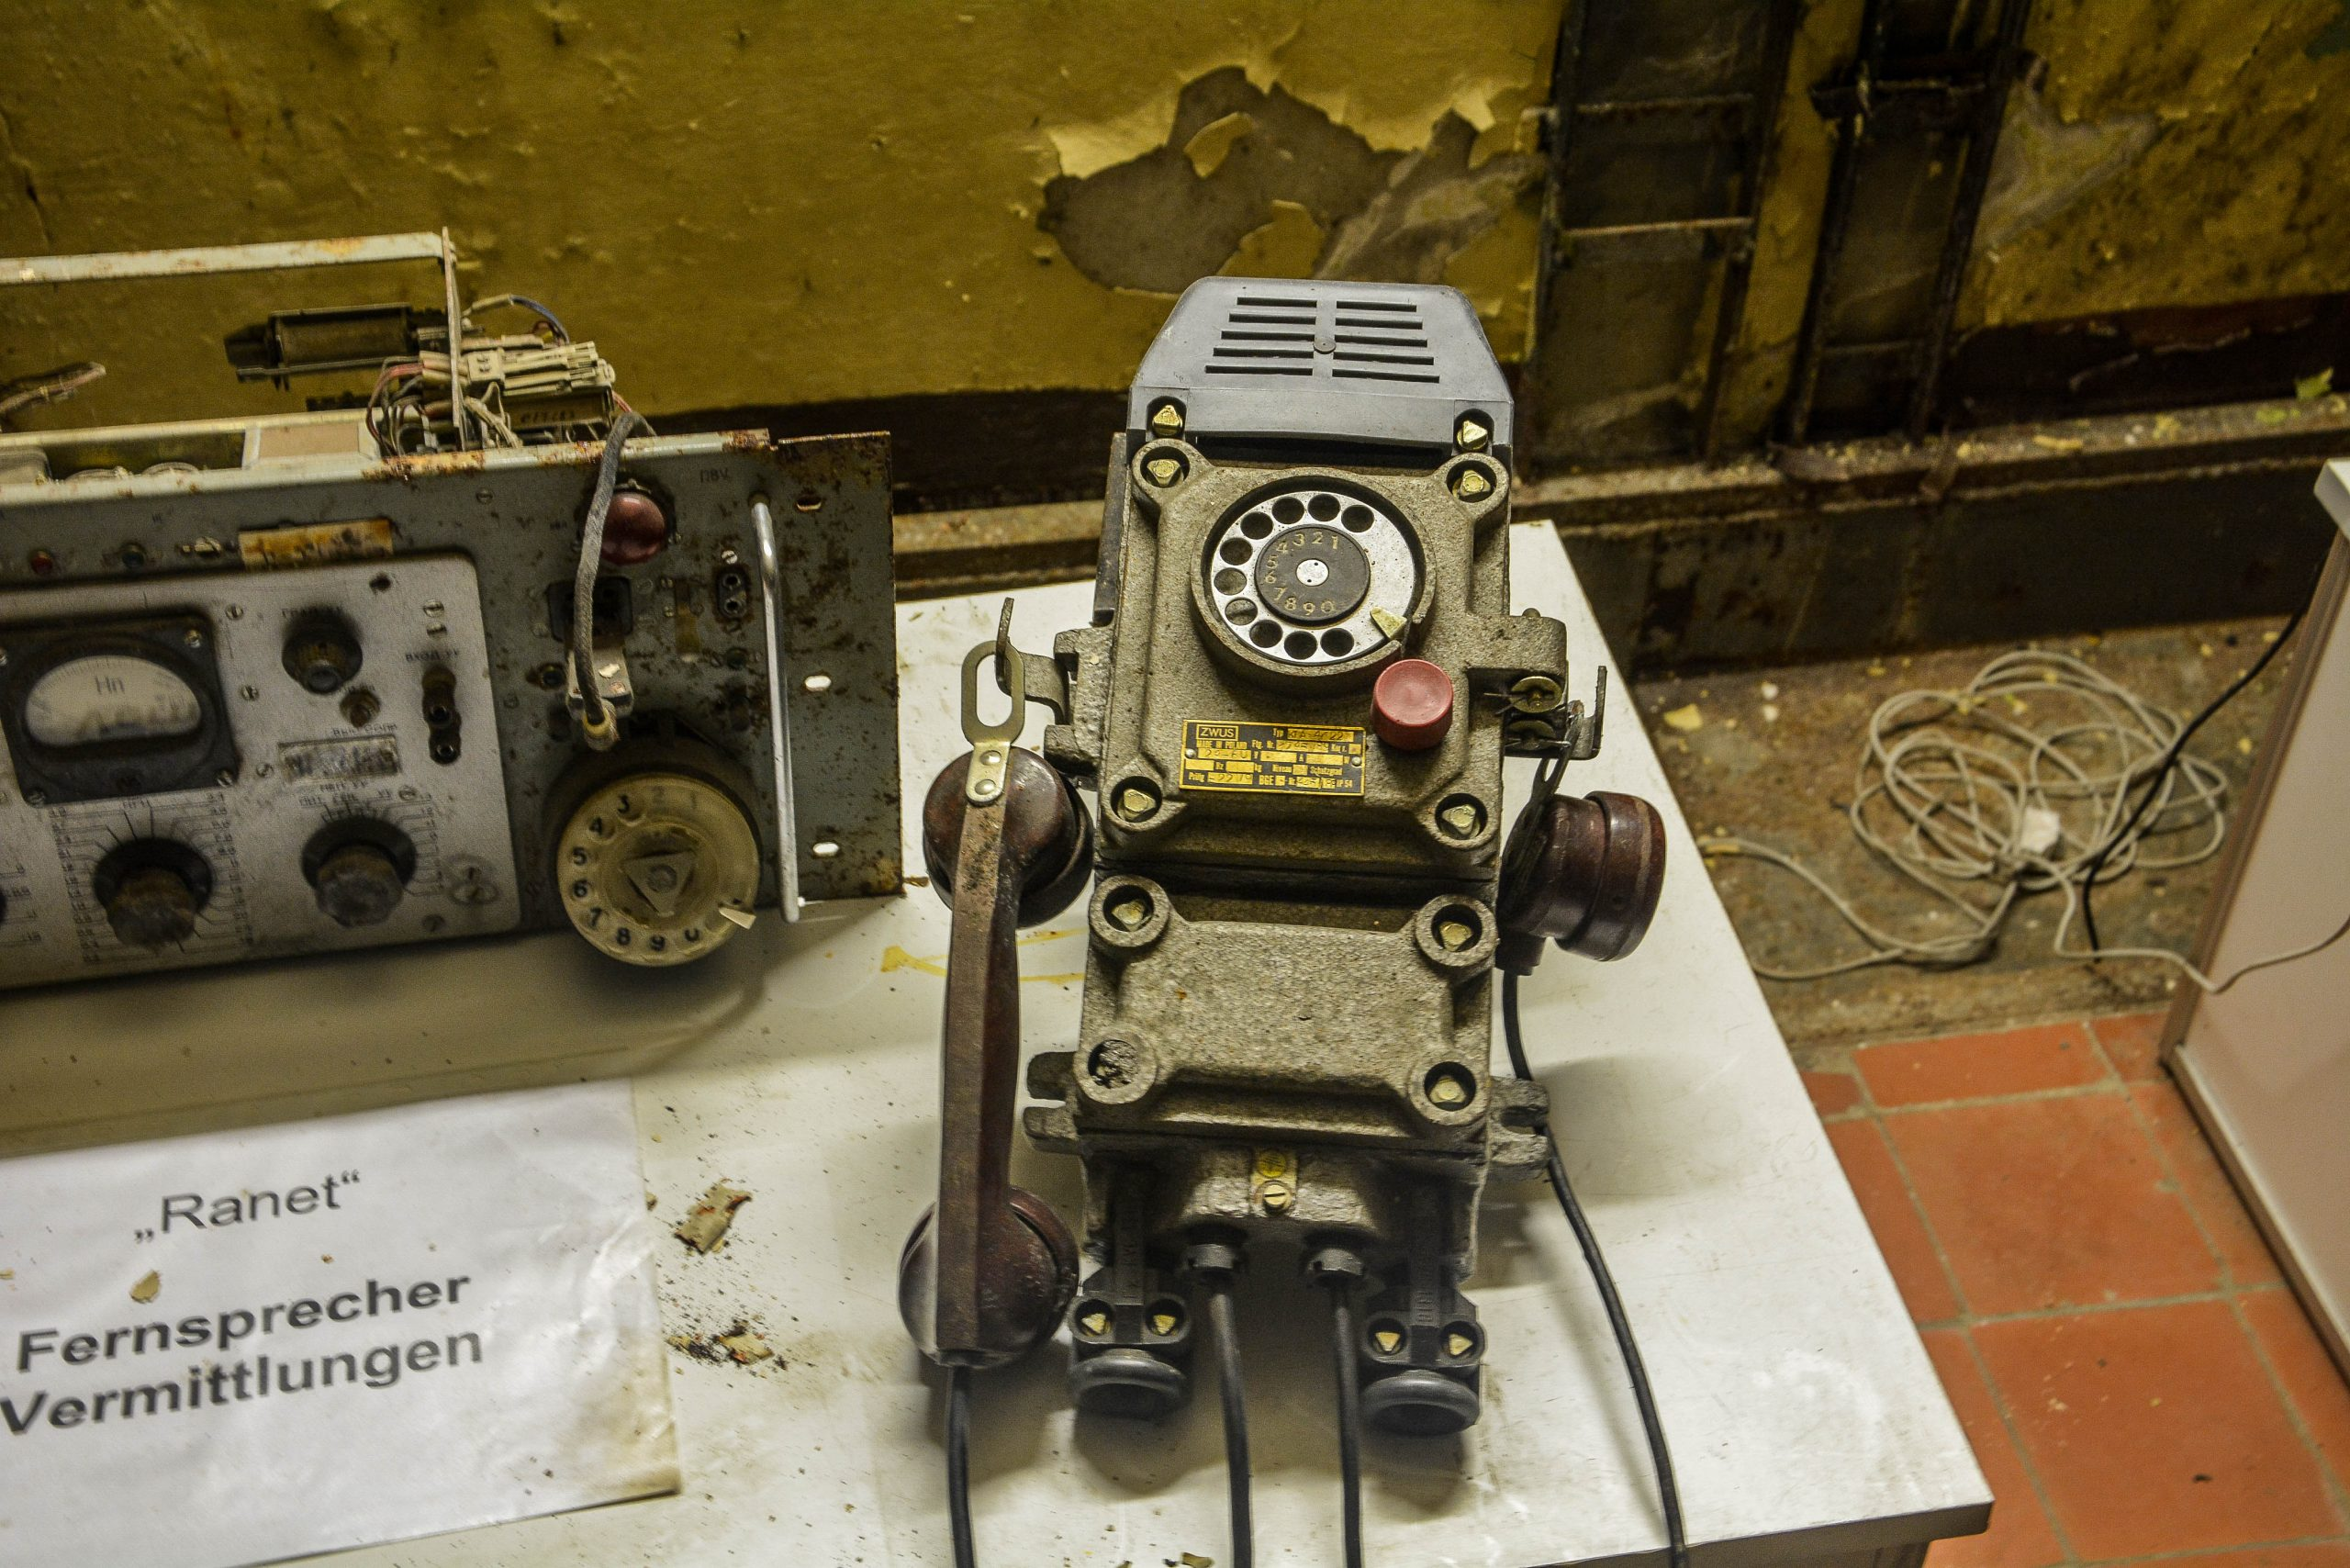 soviet bunker phone bunker zeppelin amt 500 maybach bunker ranet wehrmacht sowjet soviet military zossen brandenburg germany lost palces urbex abandoned